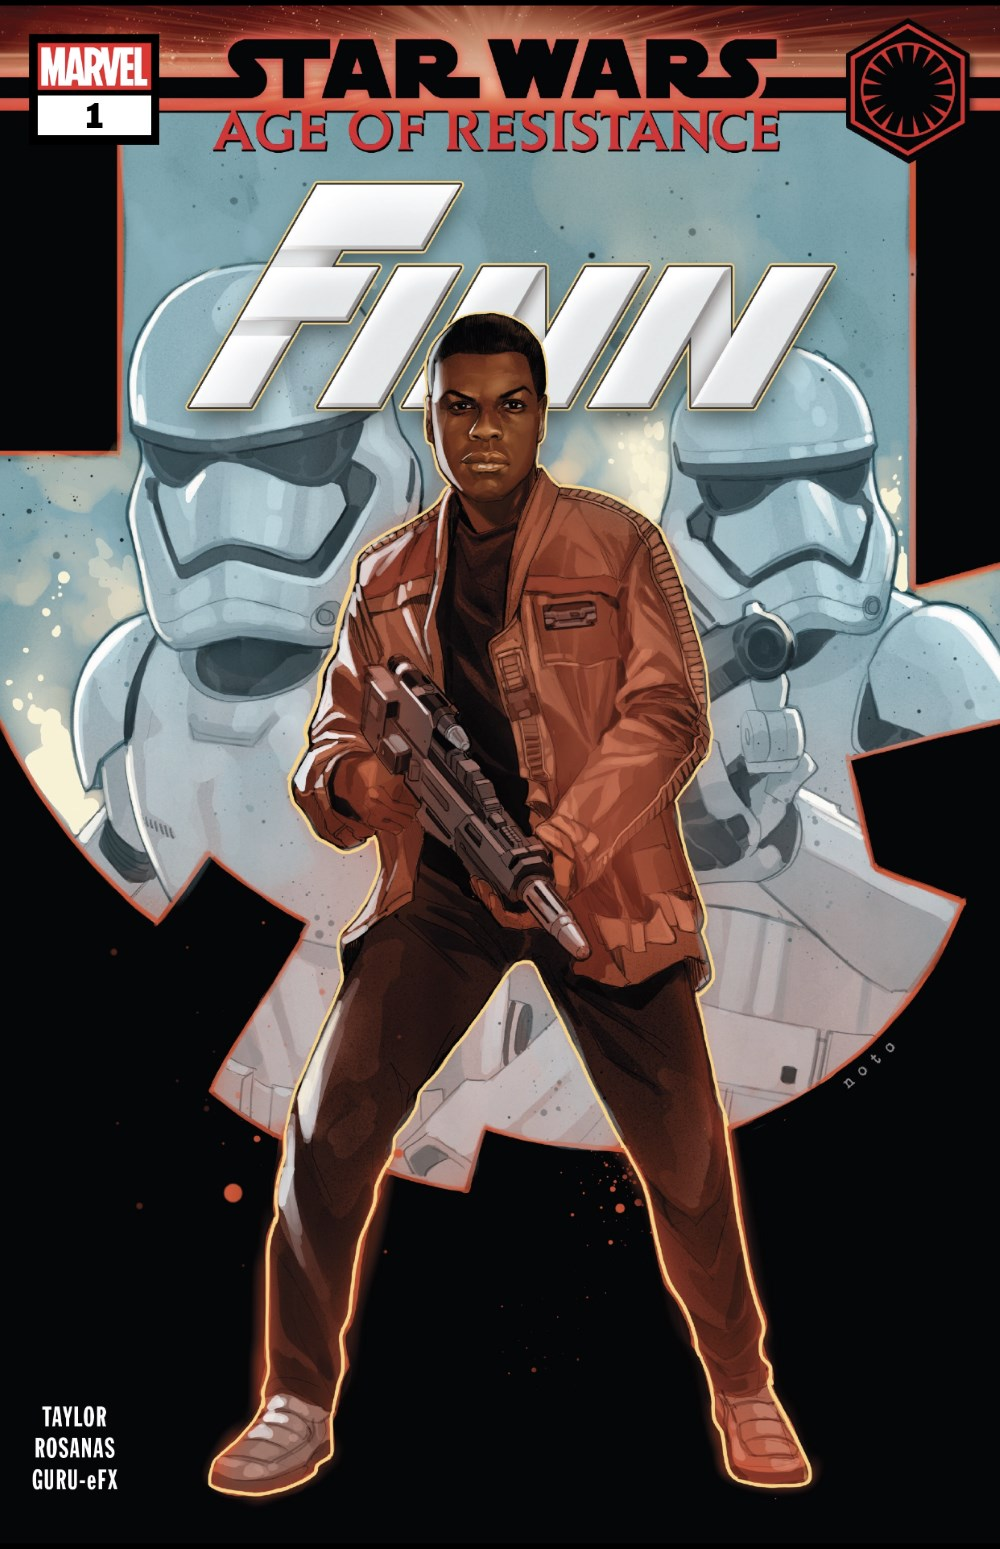 Star Wars: Age of Resistance - Finn #1 Cover